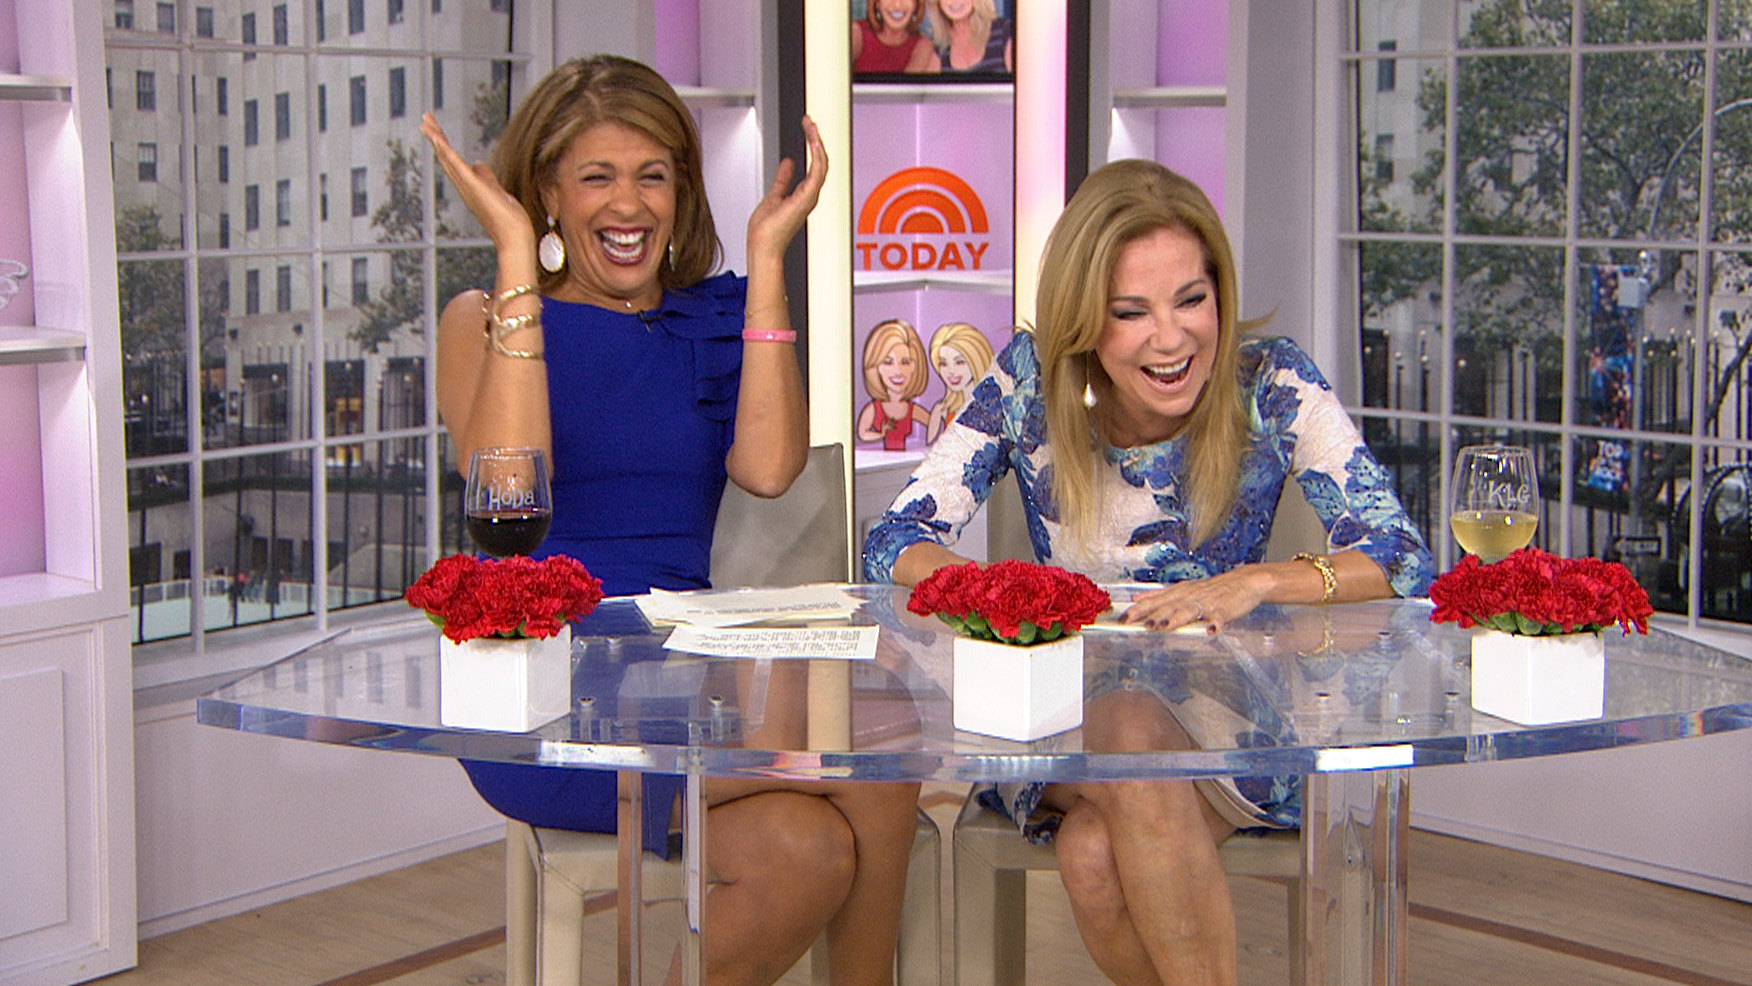 Kathyleegiffordnude Complete kathie lee, hoda and regis have a revealing moment, thanks to